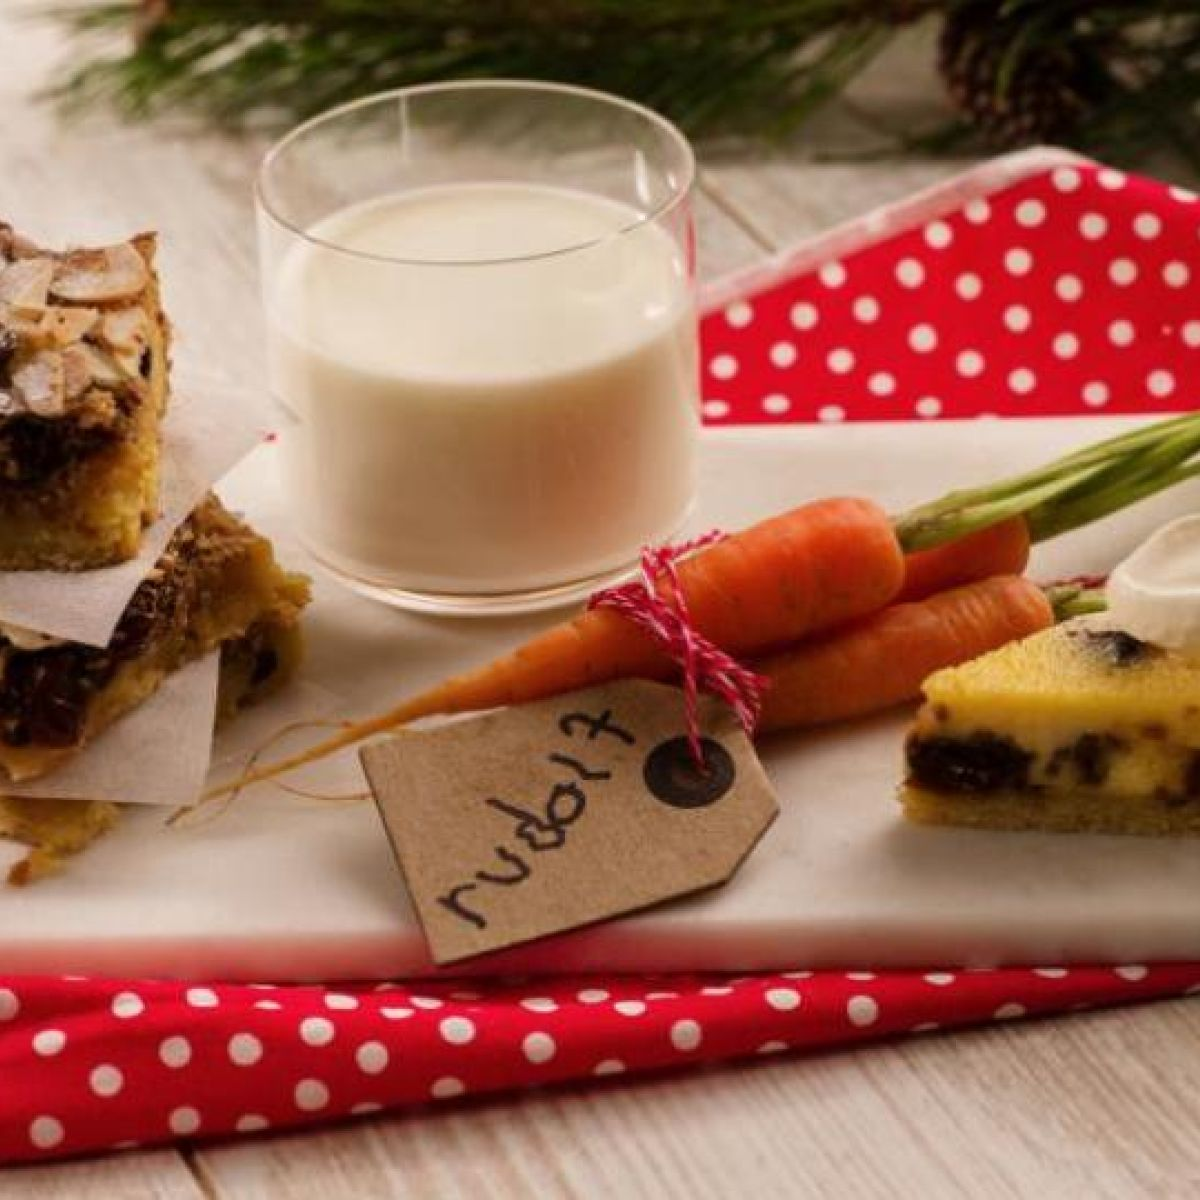 Last Minute Tasty Baking Recipes For Christmas